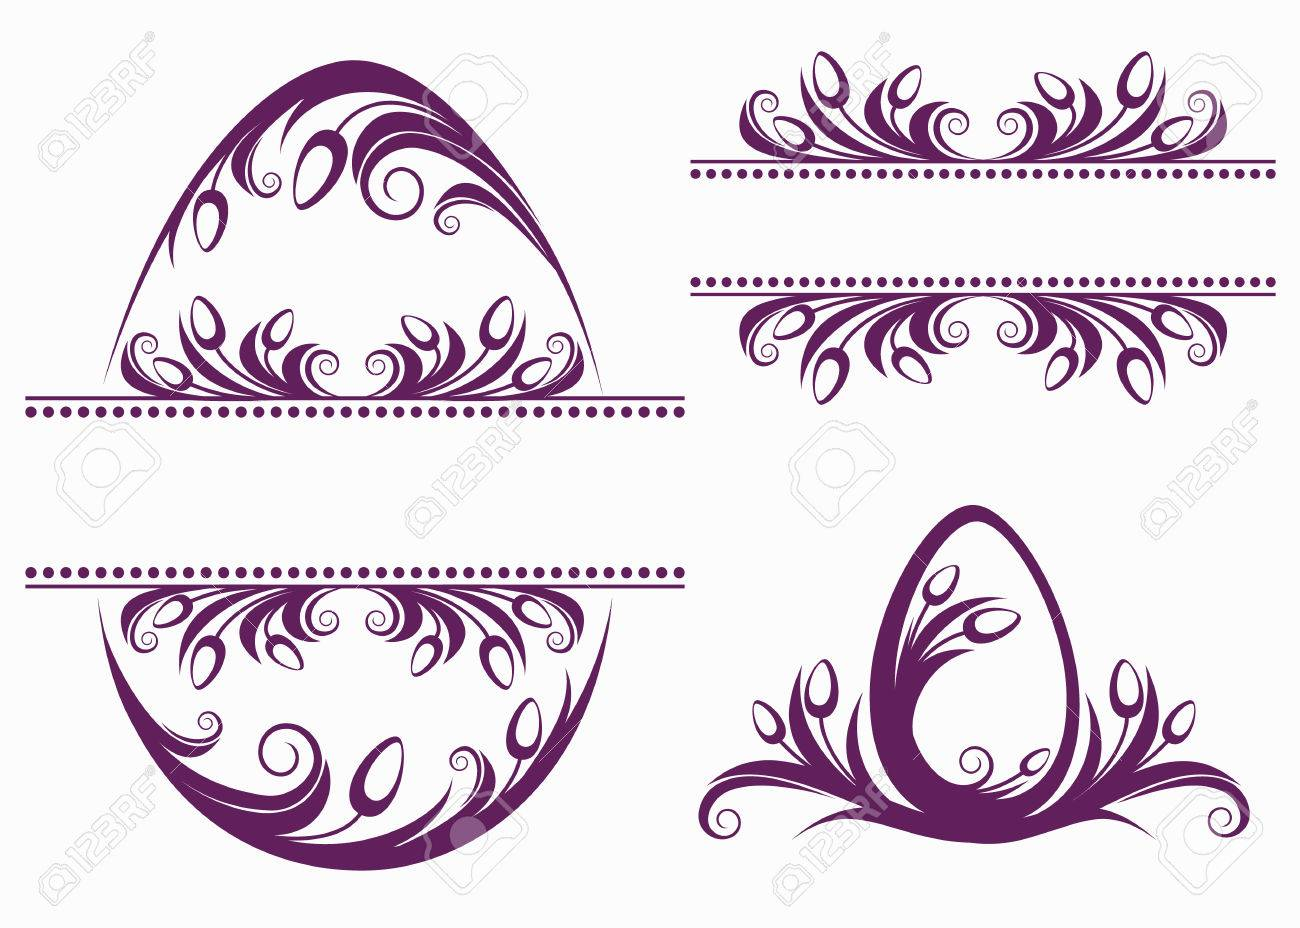 Decorative Easter Frames Royalty Free Cliparts, Vectors, And Stock ...